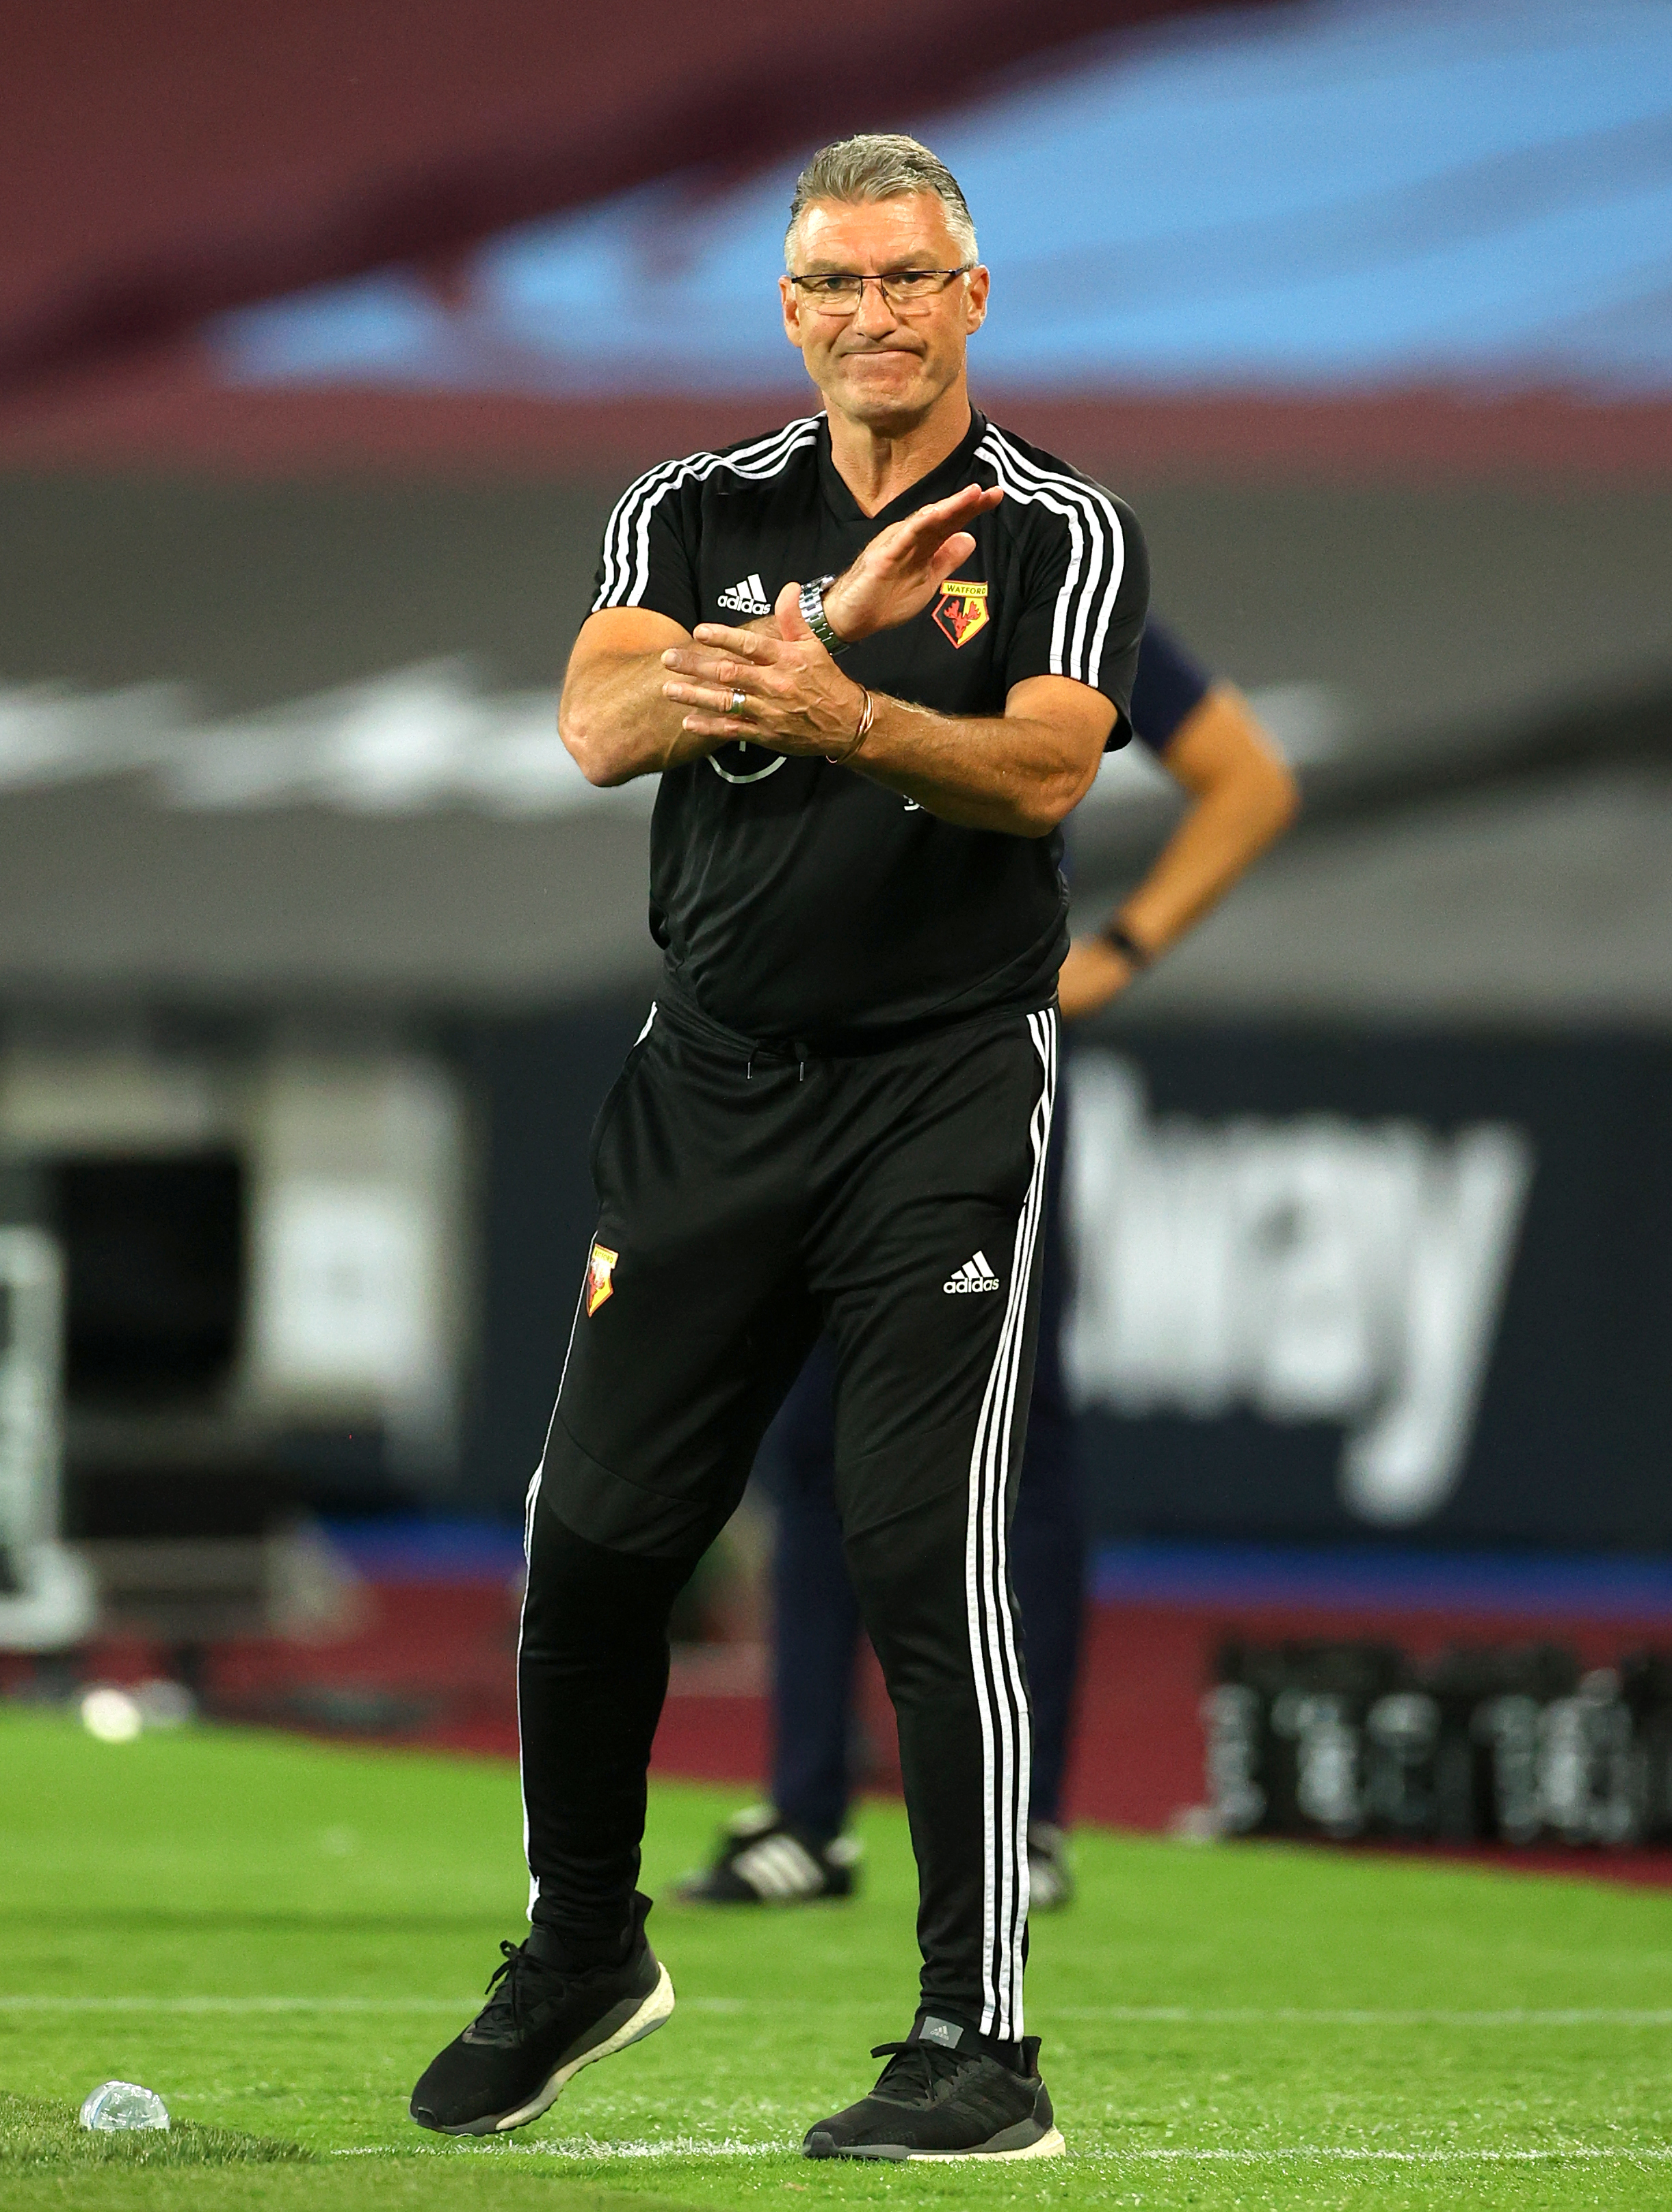 Watford manager Nigel Pearson gestures on the touchline during the Premier League match at the London Stadium.